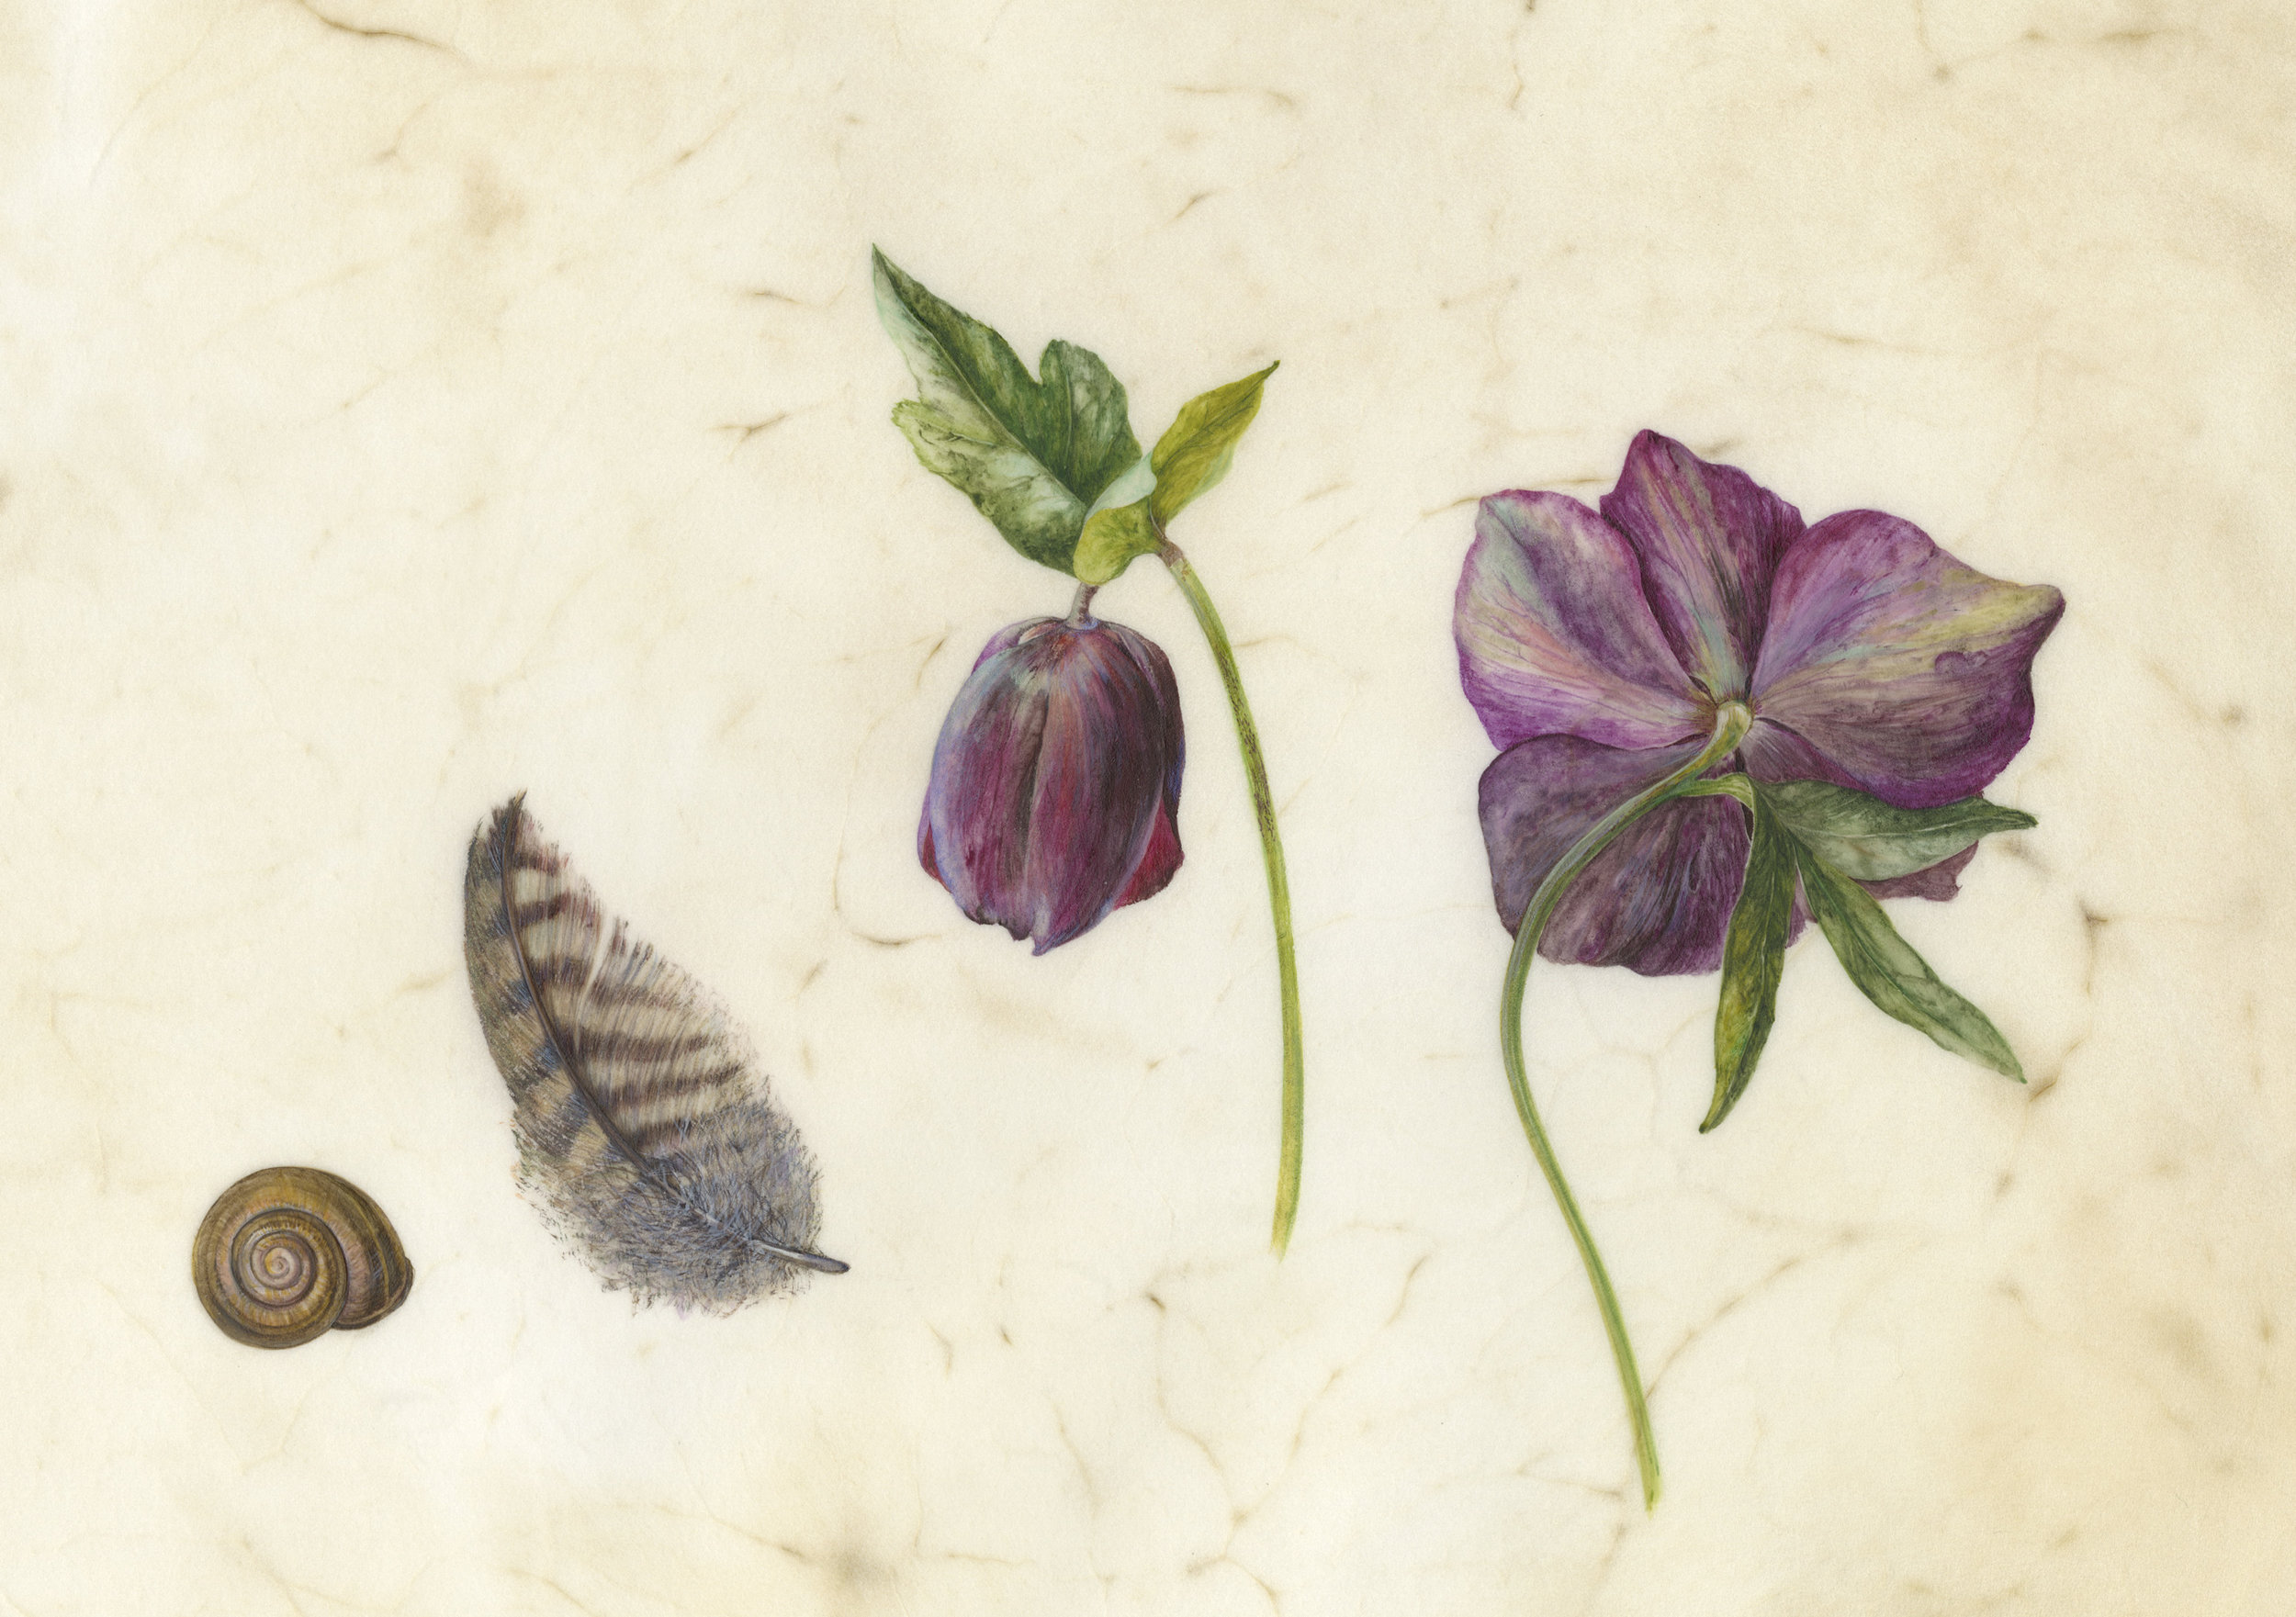 Hellebores, Pheasant Feather and Snail  watercolour on vellum  25 x 15 cm image  48 x 38 cm framed  £720